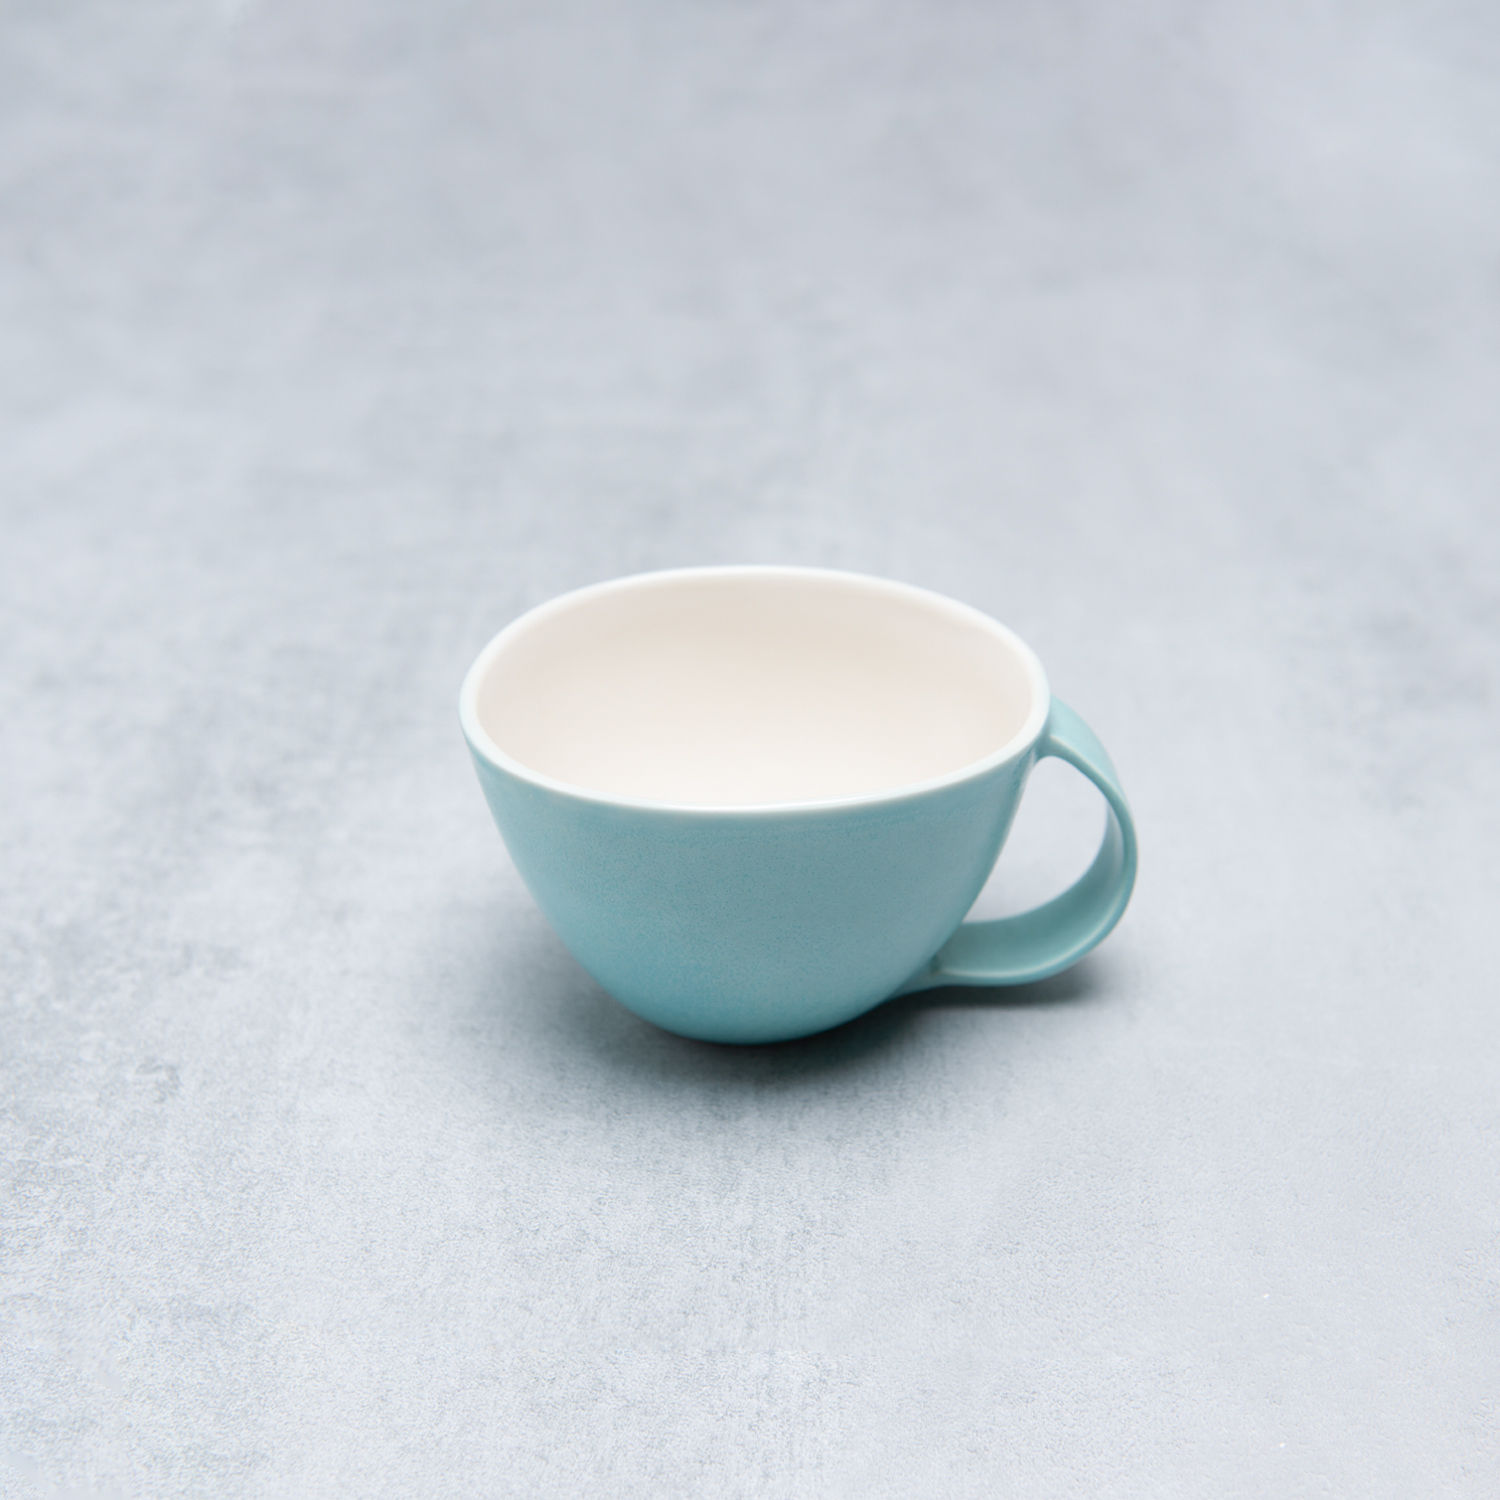 Blue Ceramic Cup Handmade By Pianca Ceramics